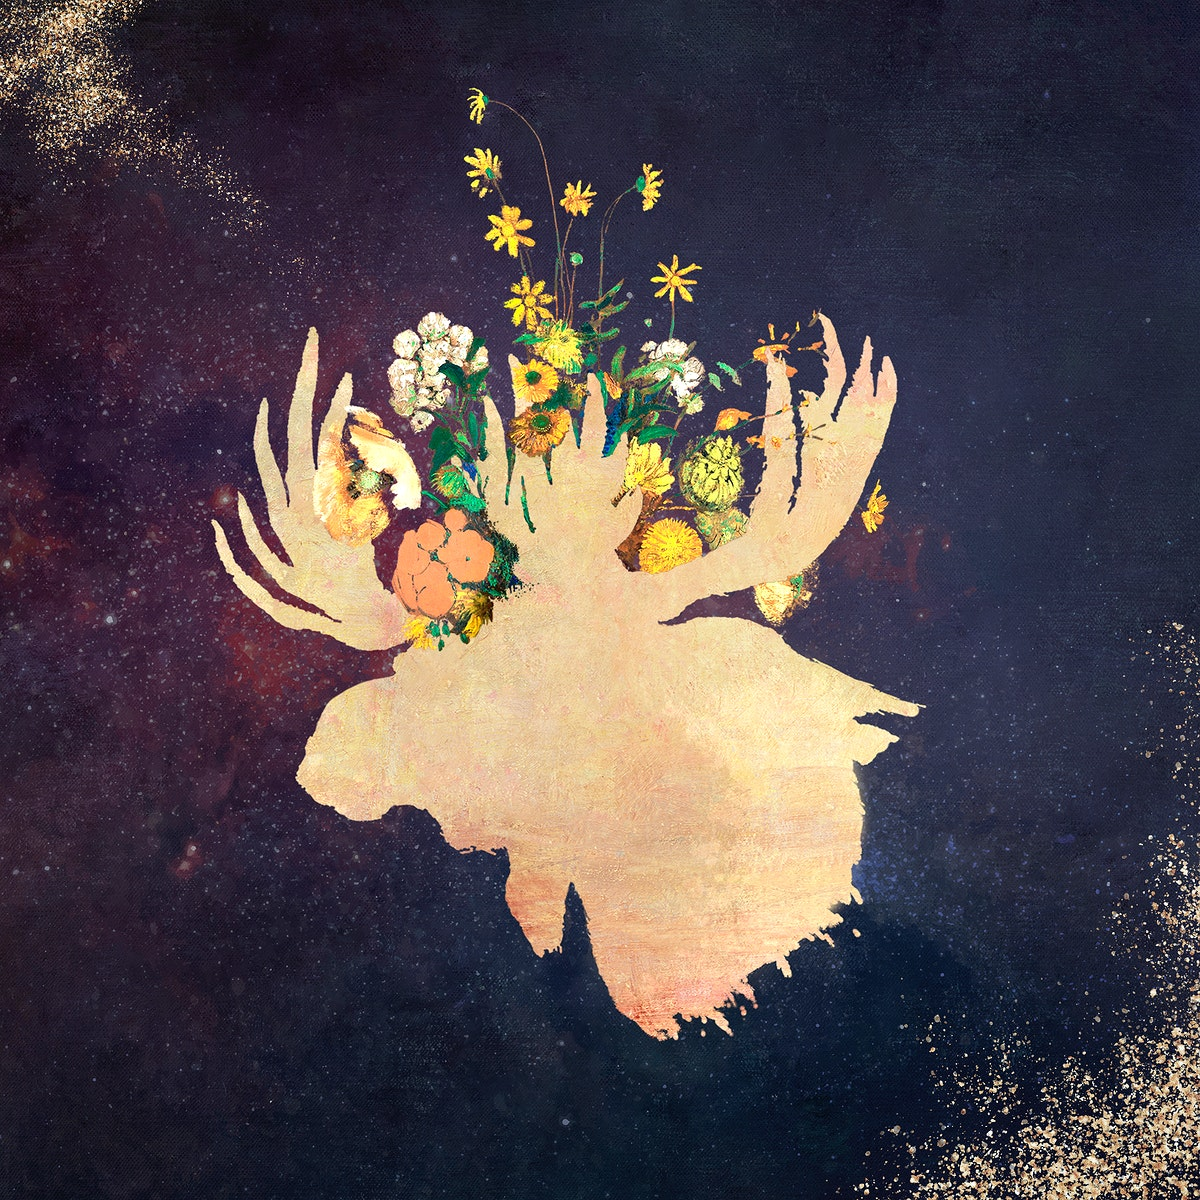 Moose head silhouette painting square background illustration